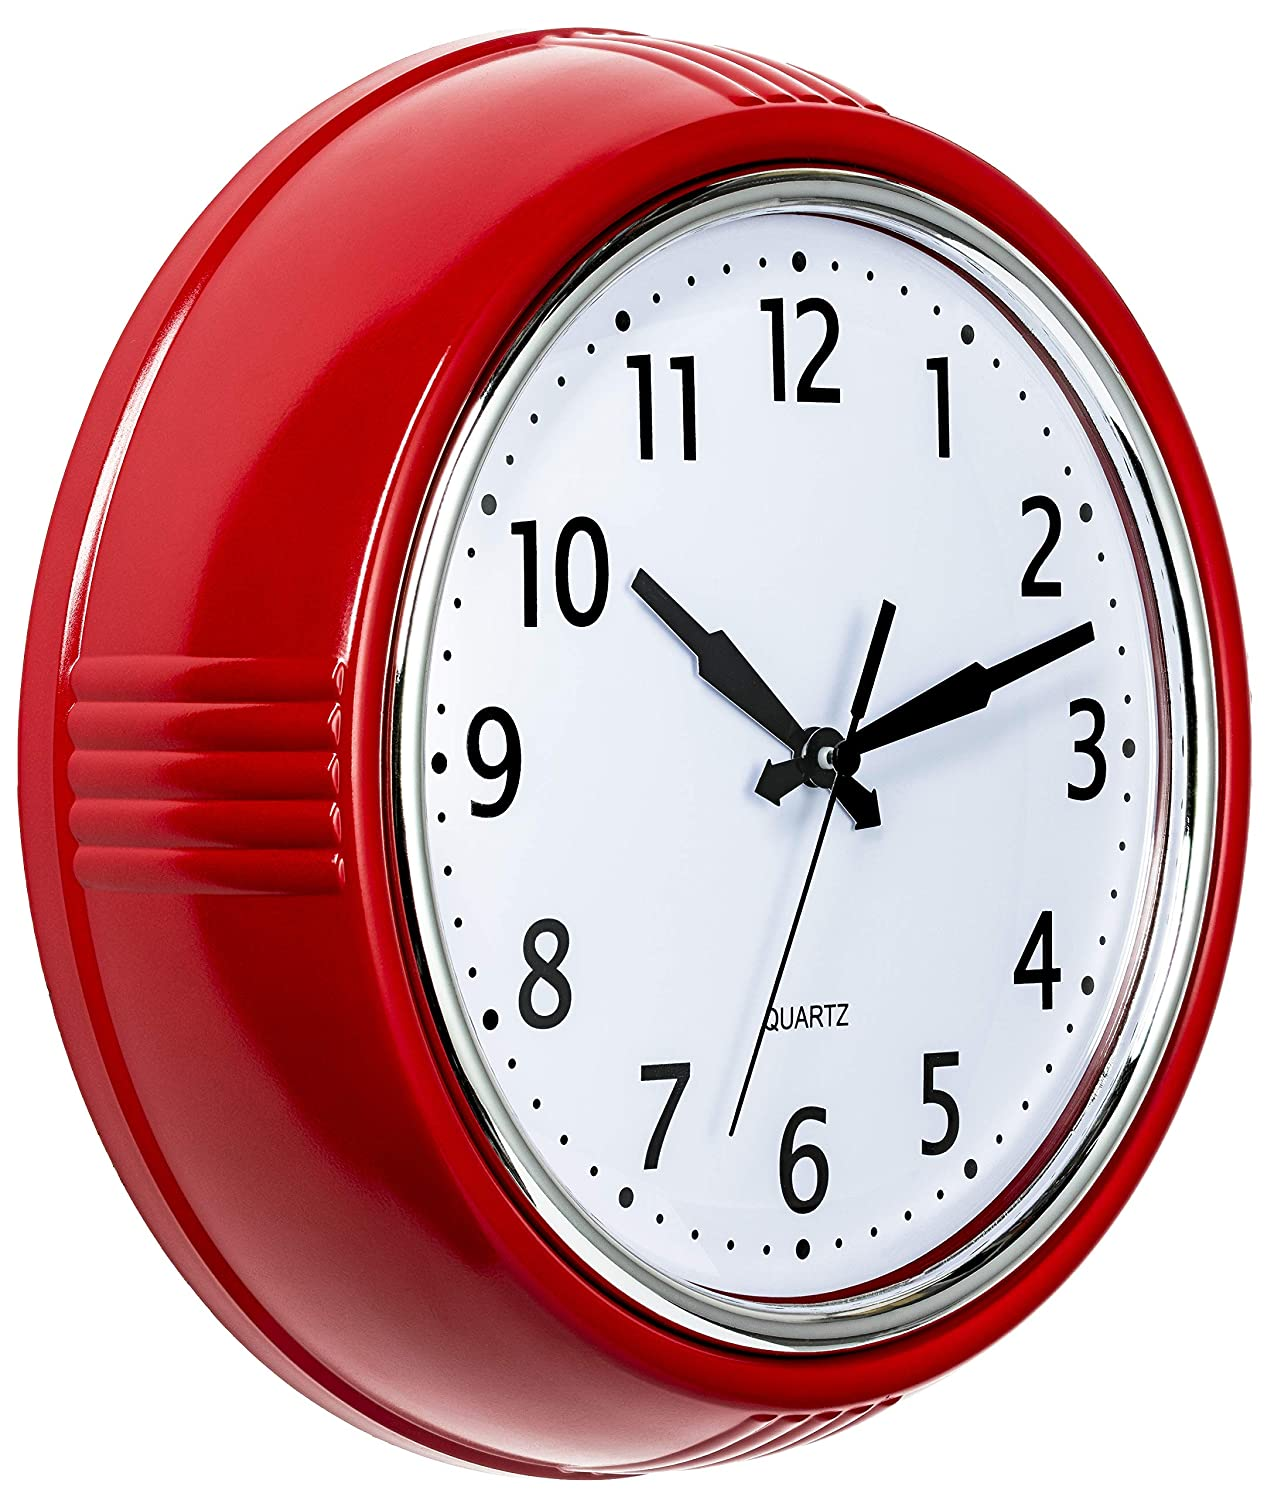 Small Red Wall Clock, 6-1/2 Inch Porcelain Plate Clock, SILENT Kitchen  Clock, Unique Wall Clock - 2692